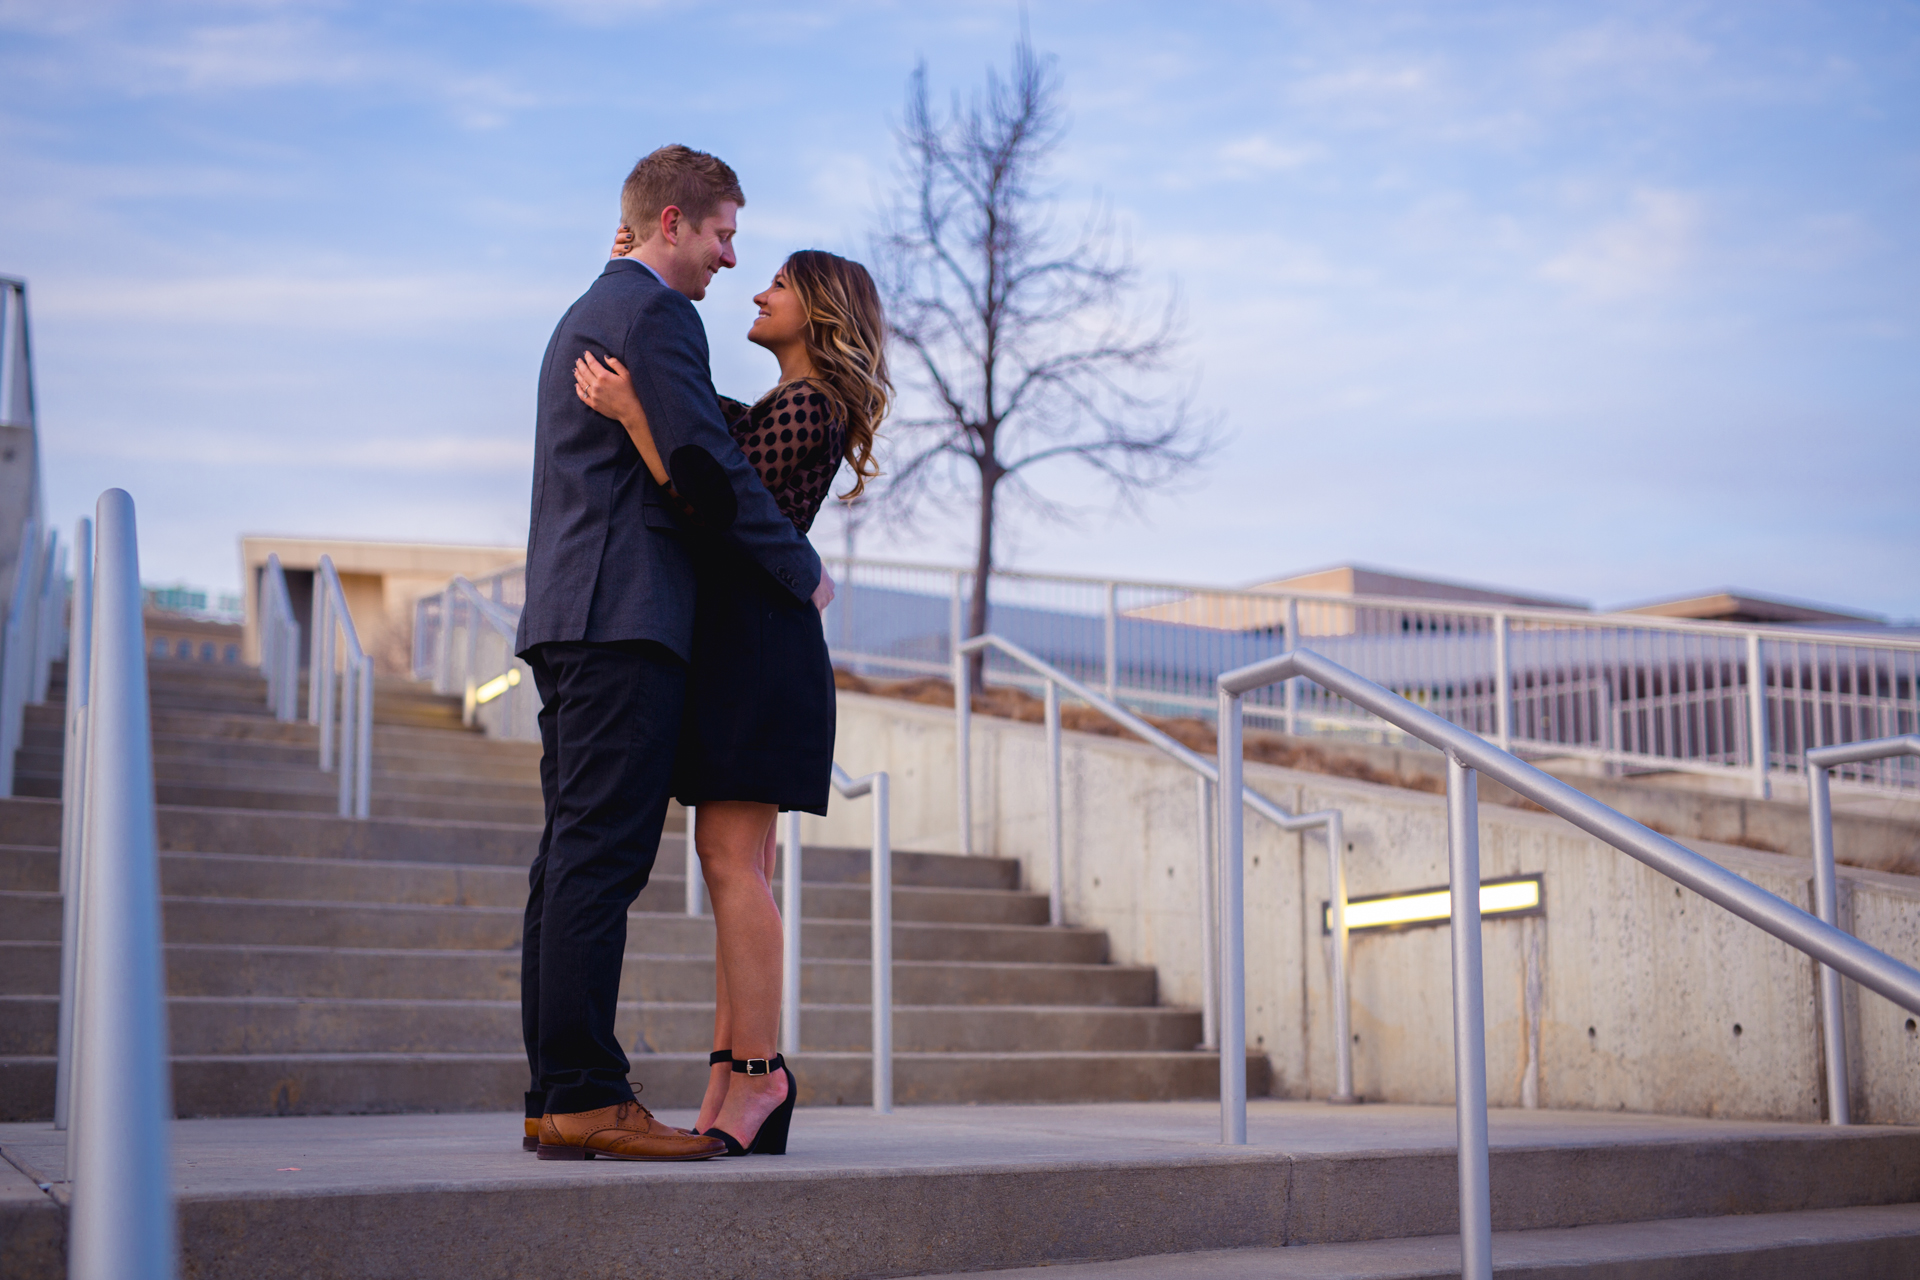 peoria illinois bloomington normal engagement pictures peoria riverfront wedding photographer-11.jpg